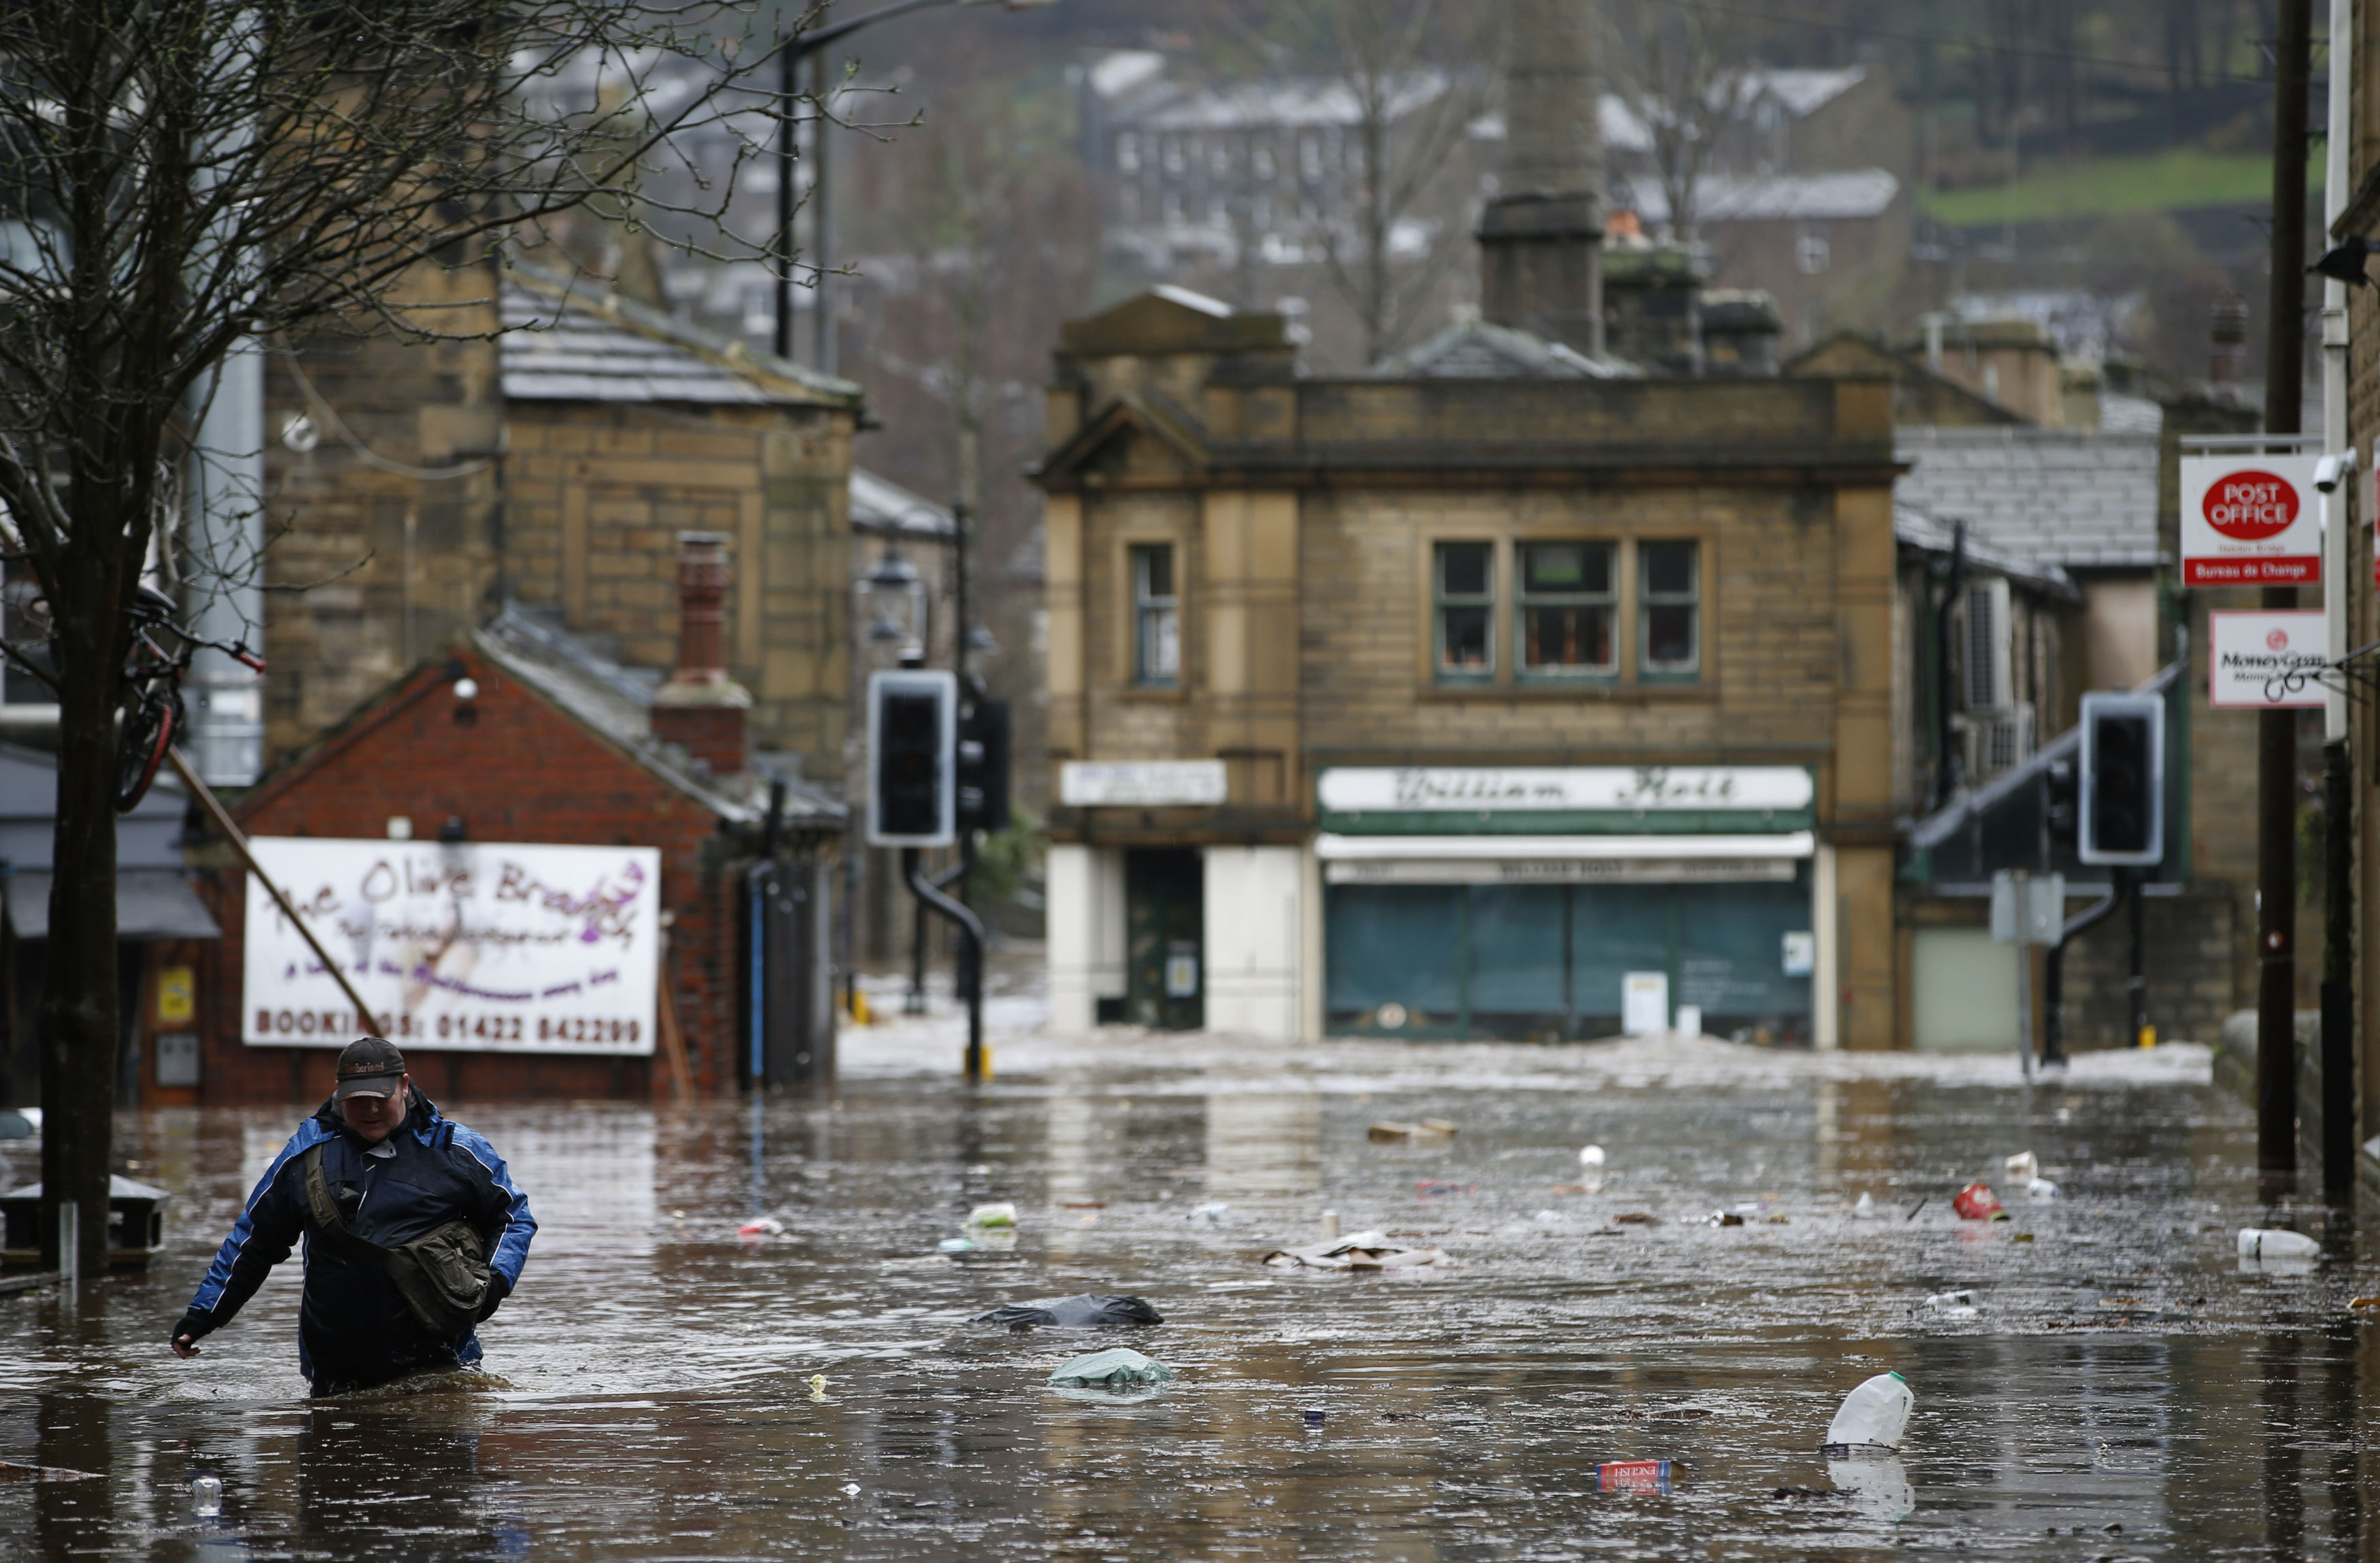 A man wades through flood waters at Hebden Bridge in West Yorkshire, England, Saturday December 26, 2015. Photo: AP